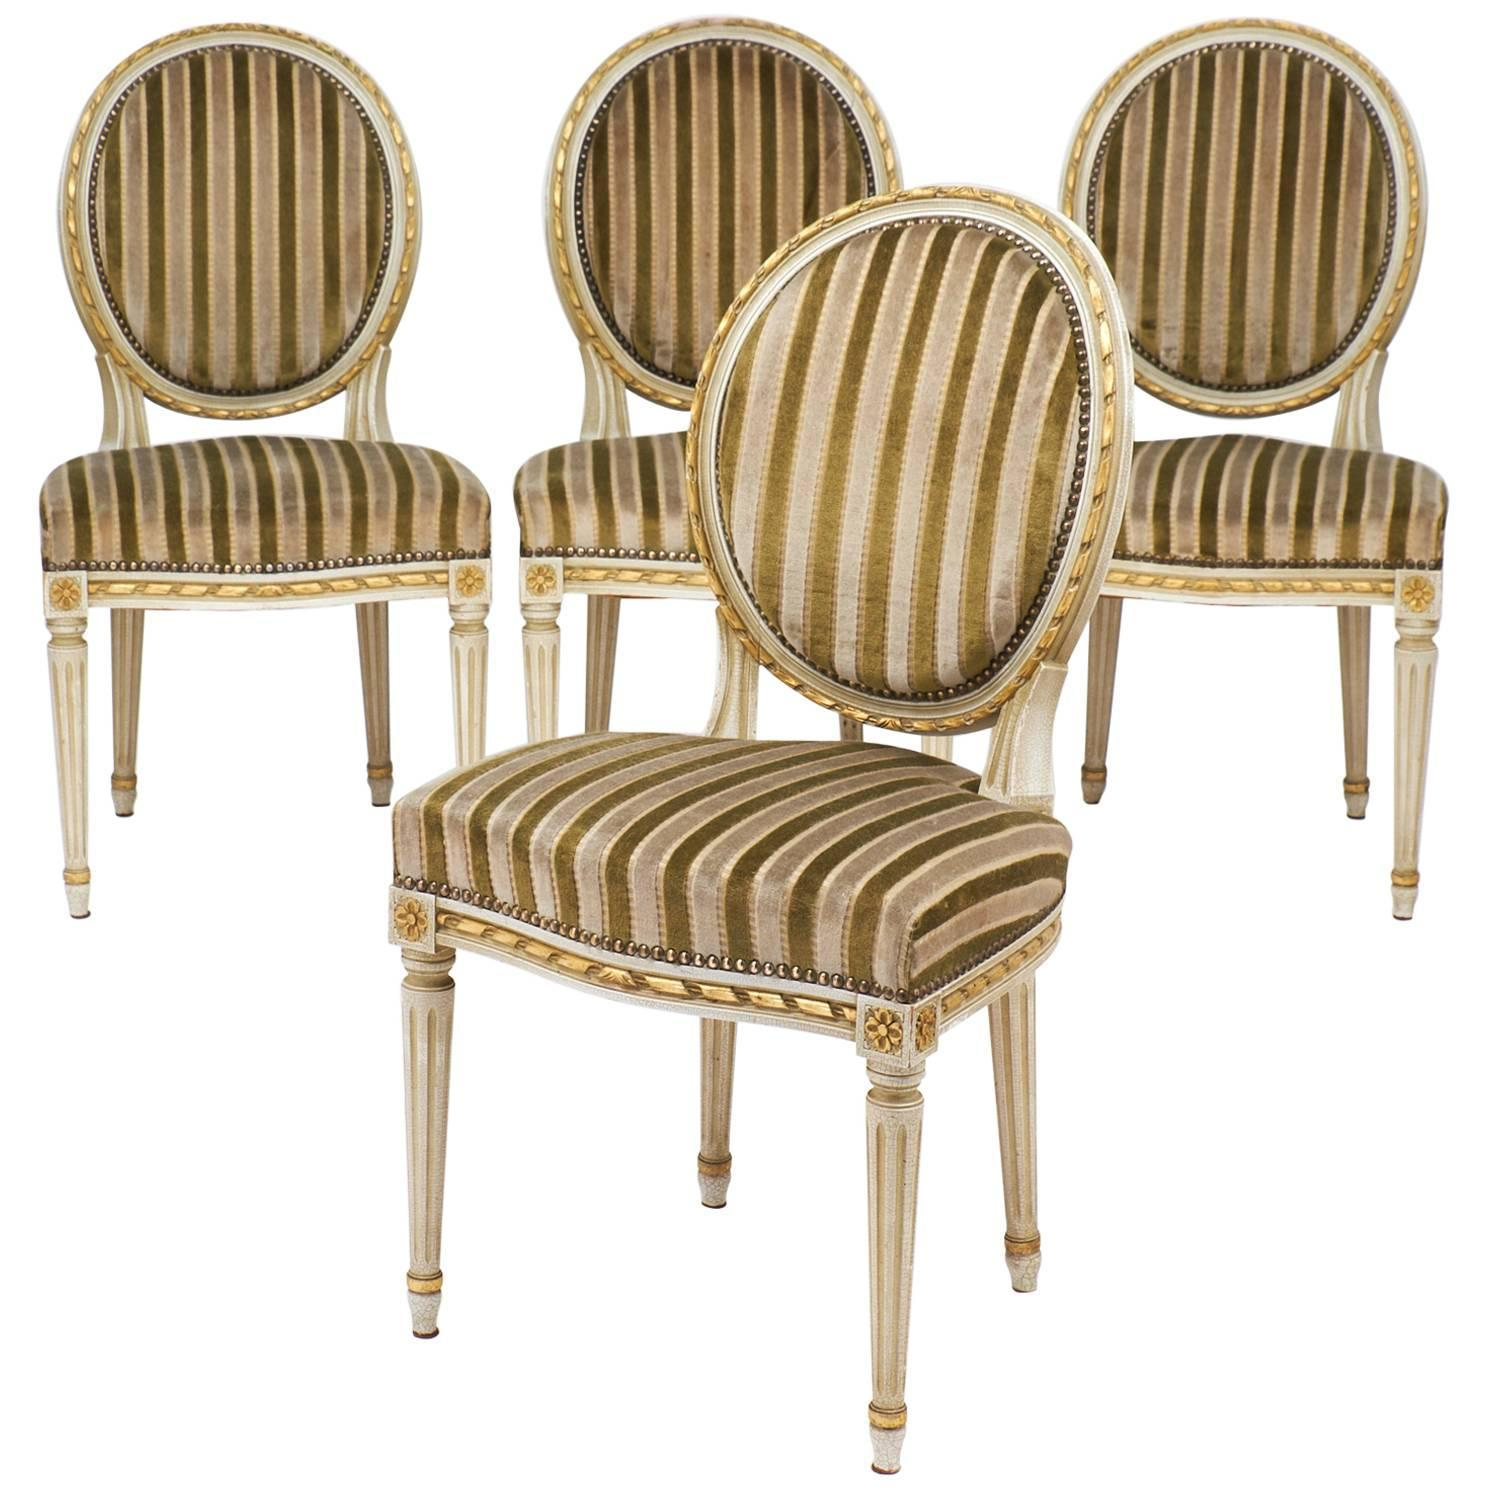 Gold Leaf Striped Velvet Set of Four Antique Louis XVI Dining